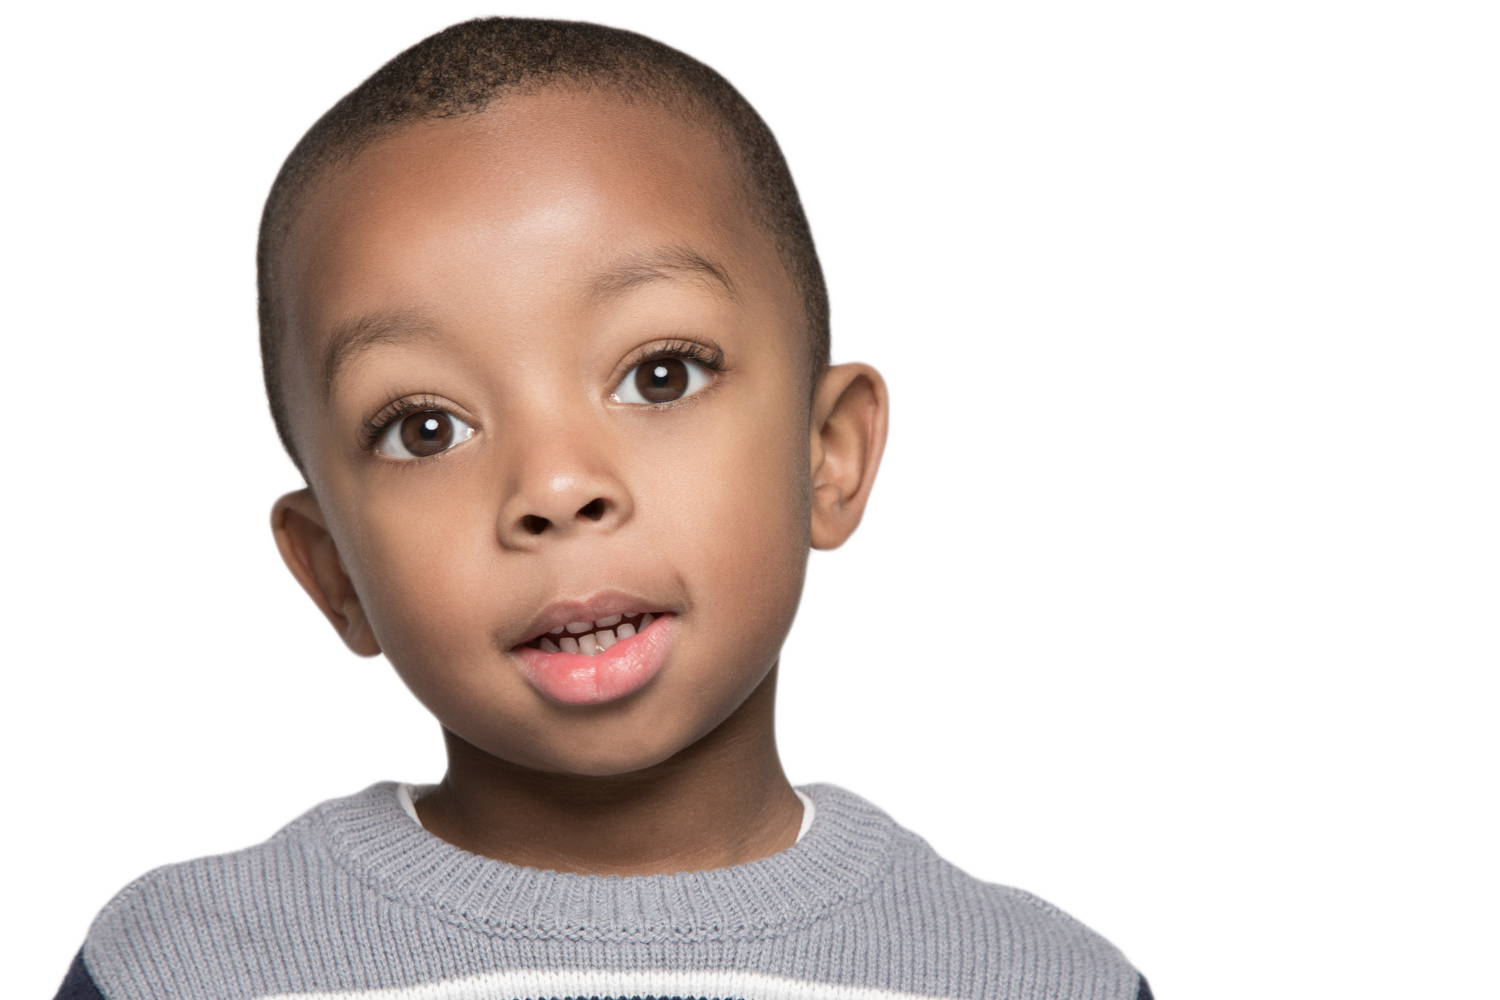 Boy Children Portrait on White Background by Lamonte G Photography Orlando